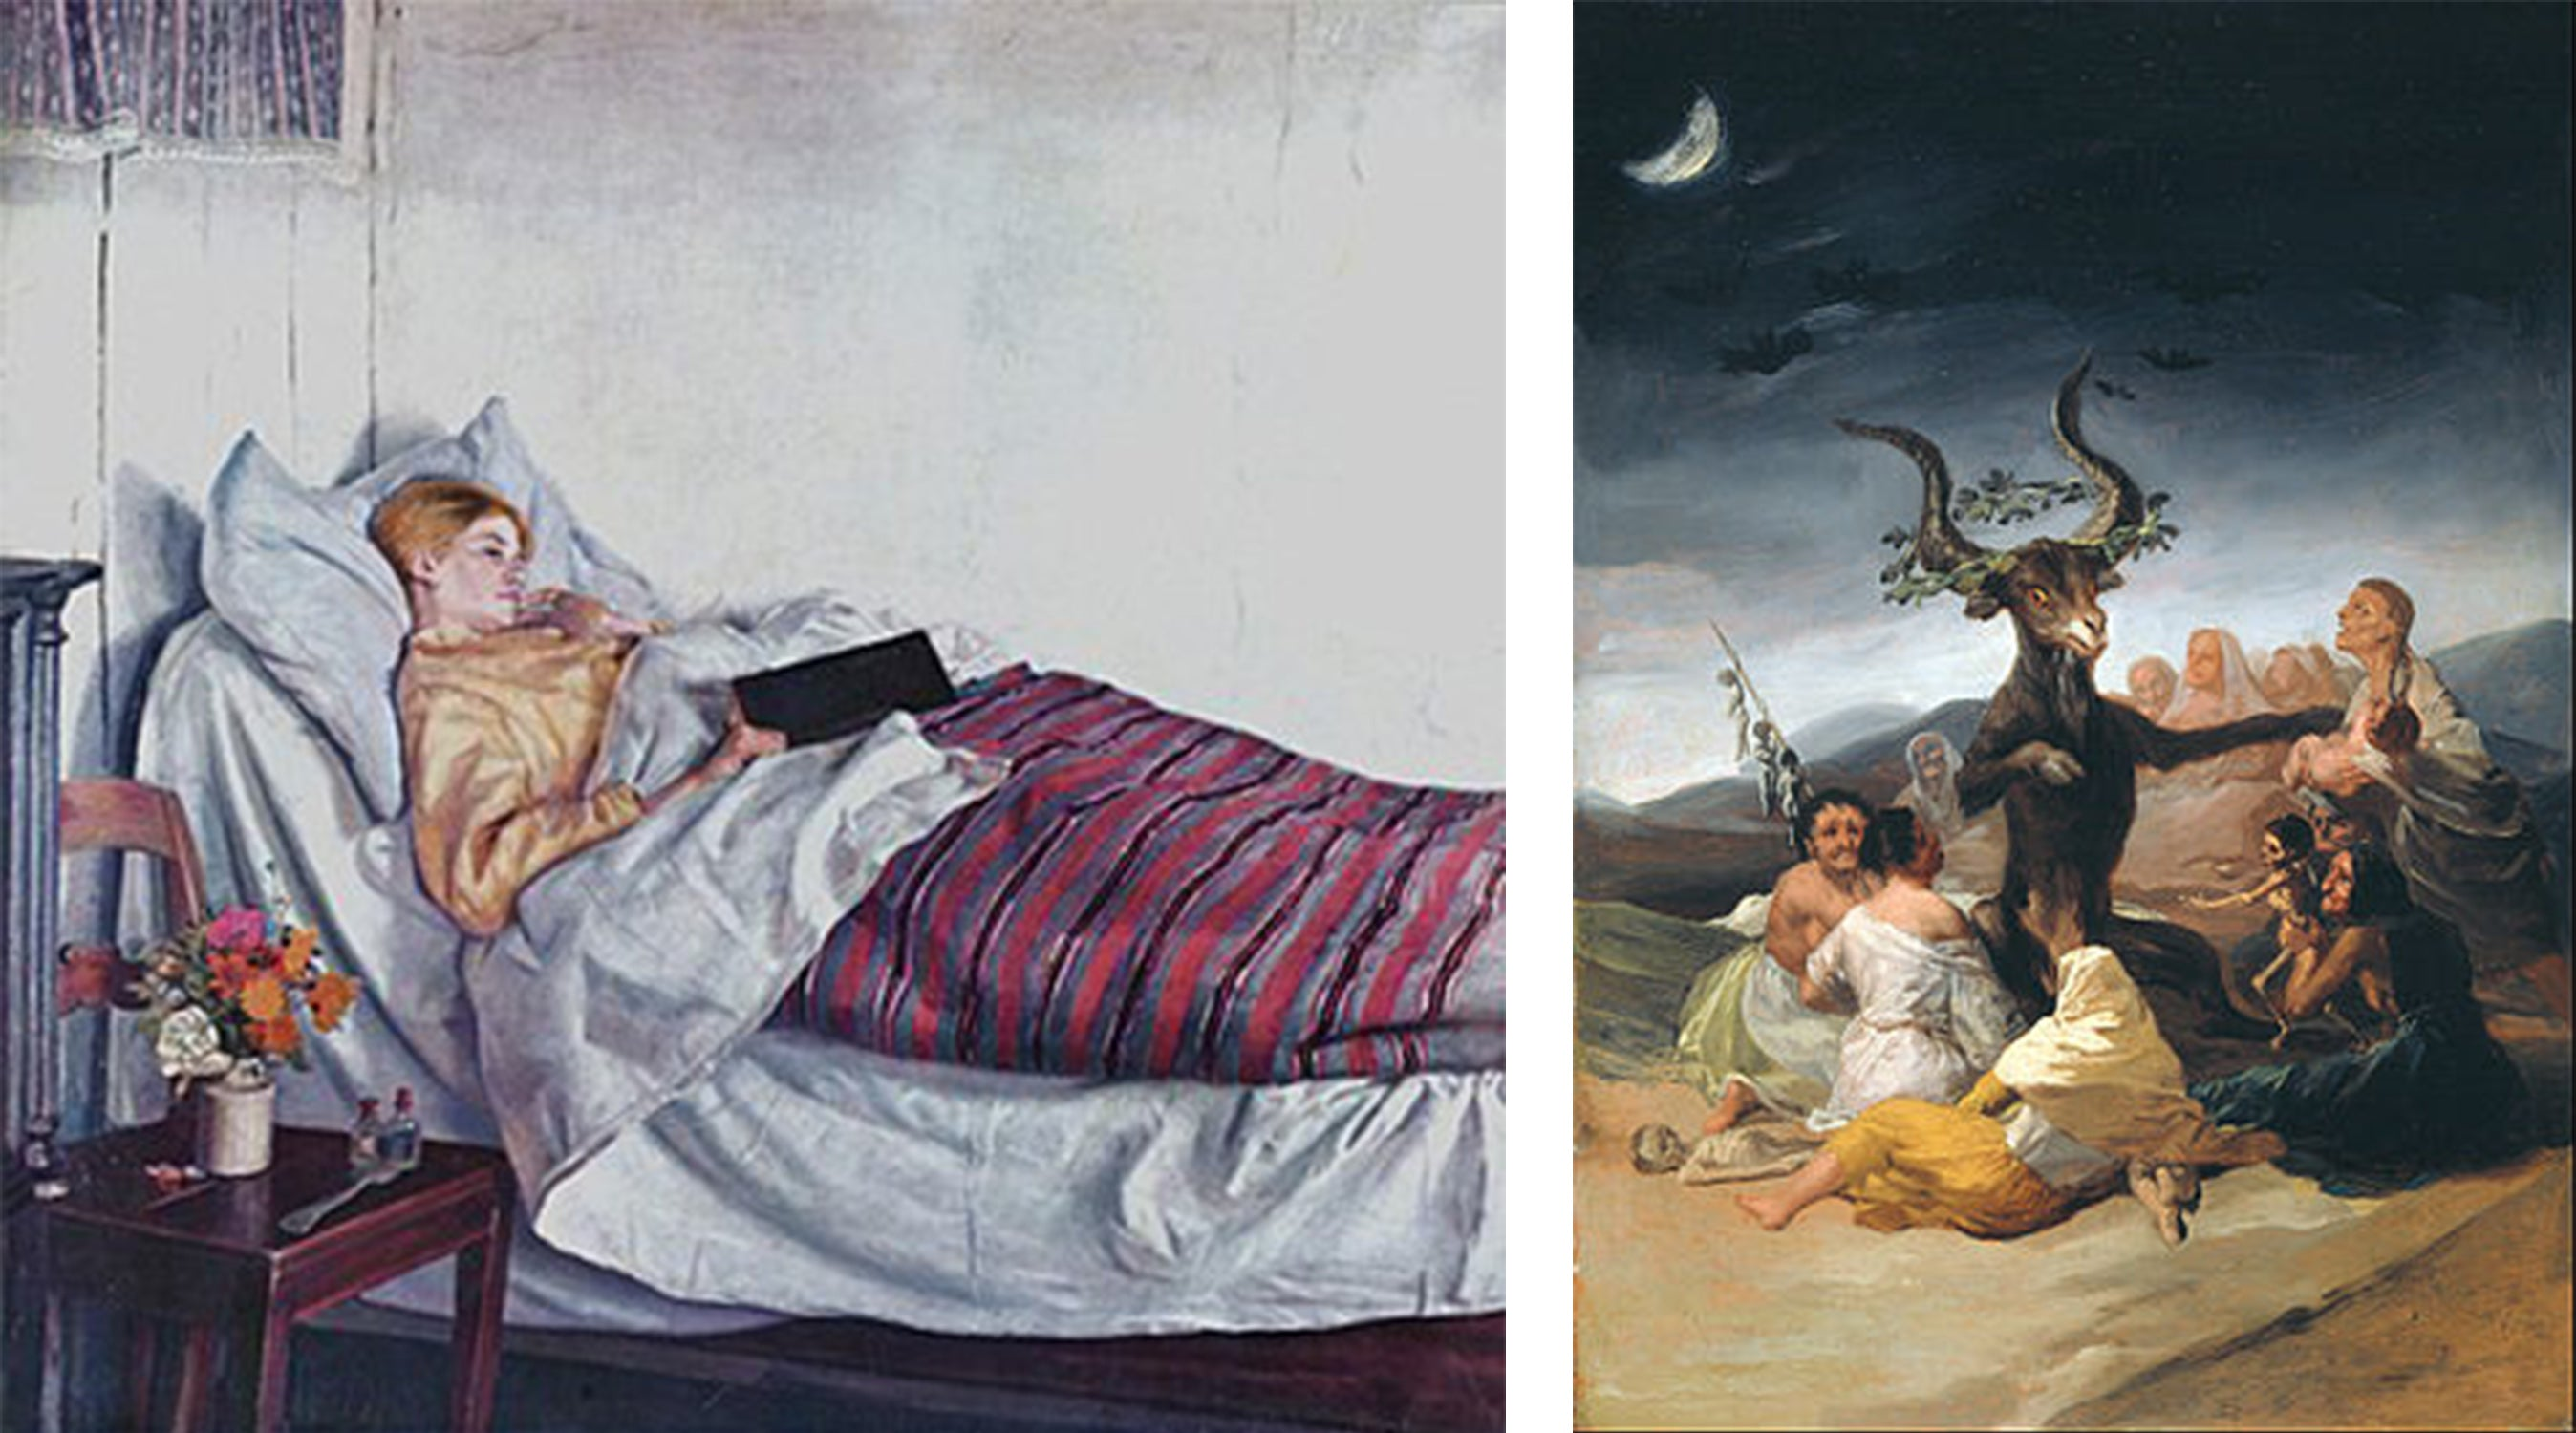 """""""The Sick Girl"""", 1882 by Dutch painter Micheal Ancher at the Statens Museum for Kunst, and """"The Witches Sabbath"""" (1797-1798) by Spanish artist Francisco Goya"""